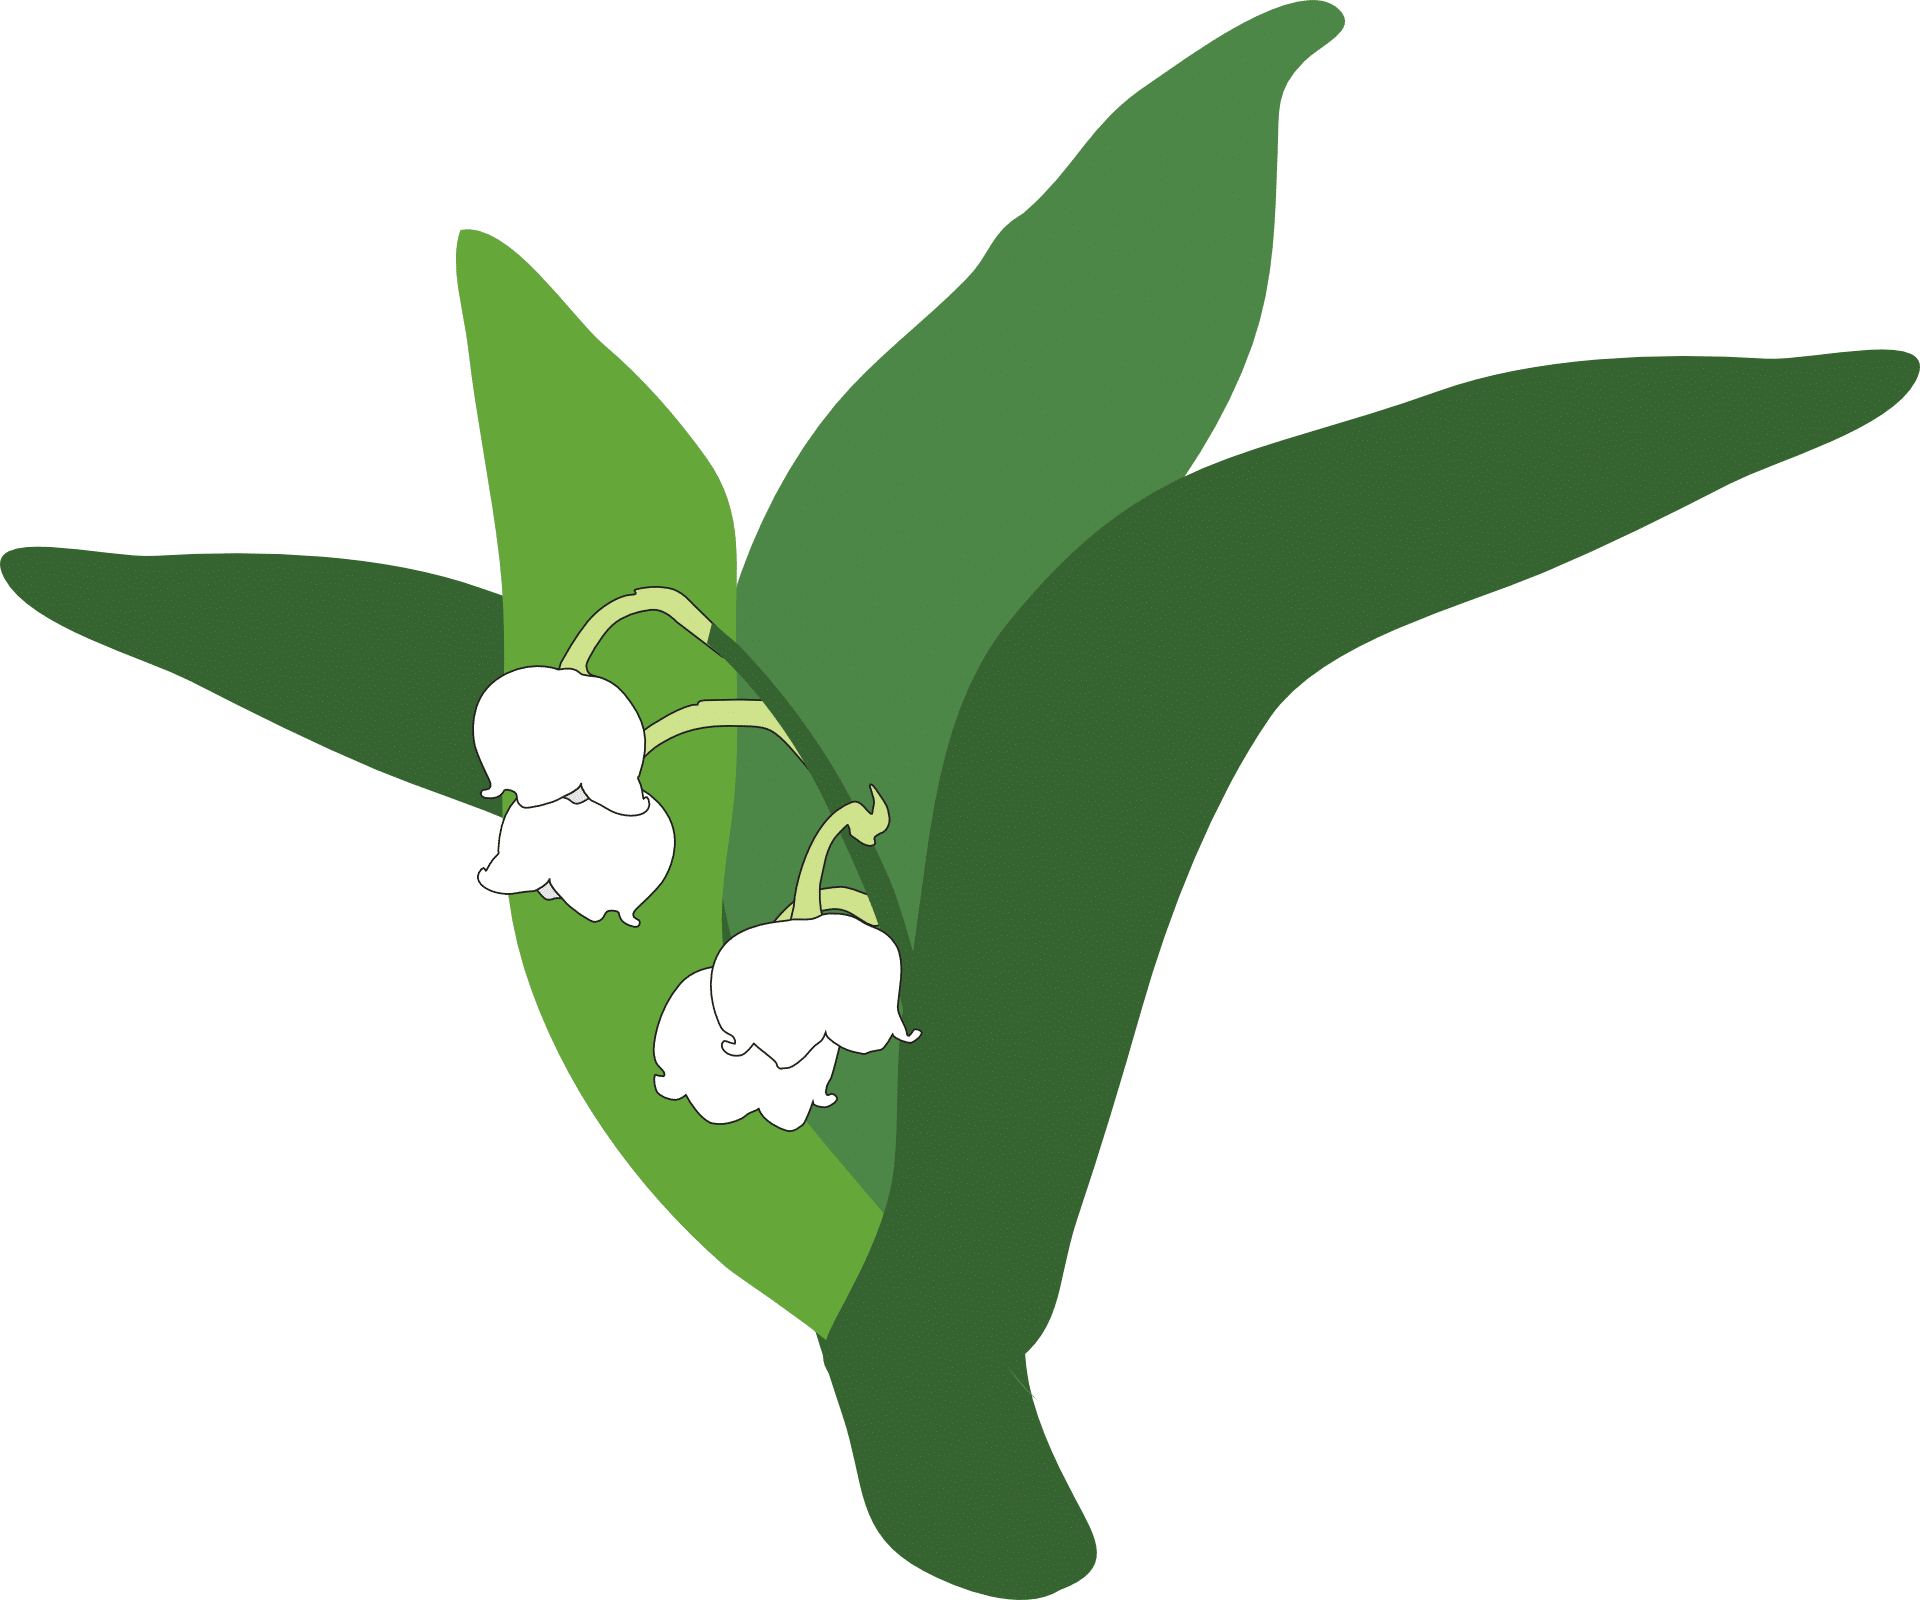 lily-of-the-valley-335215